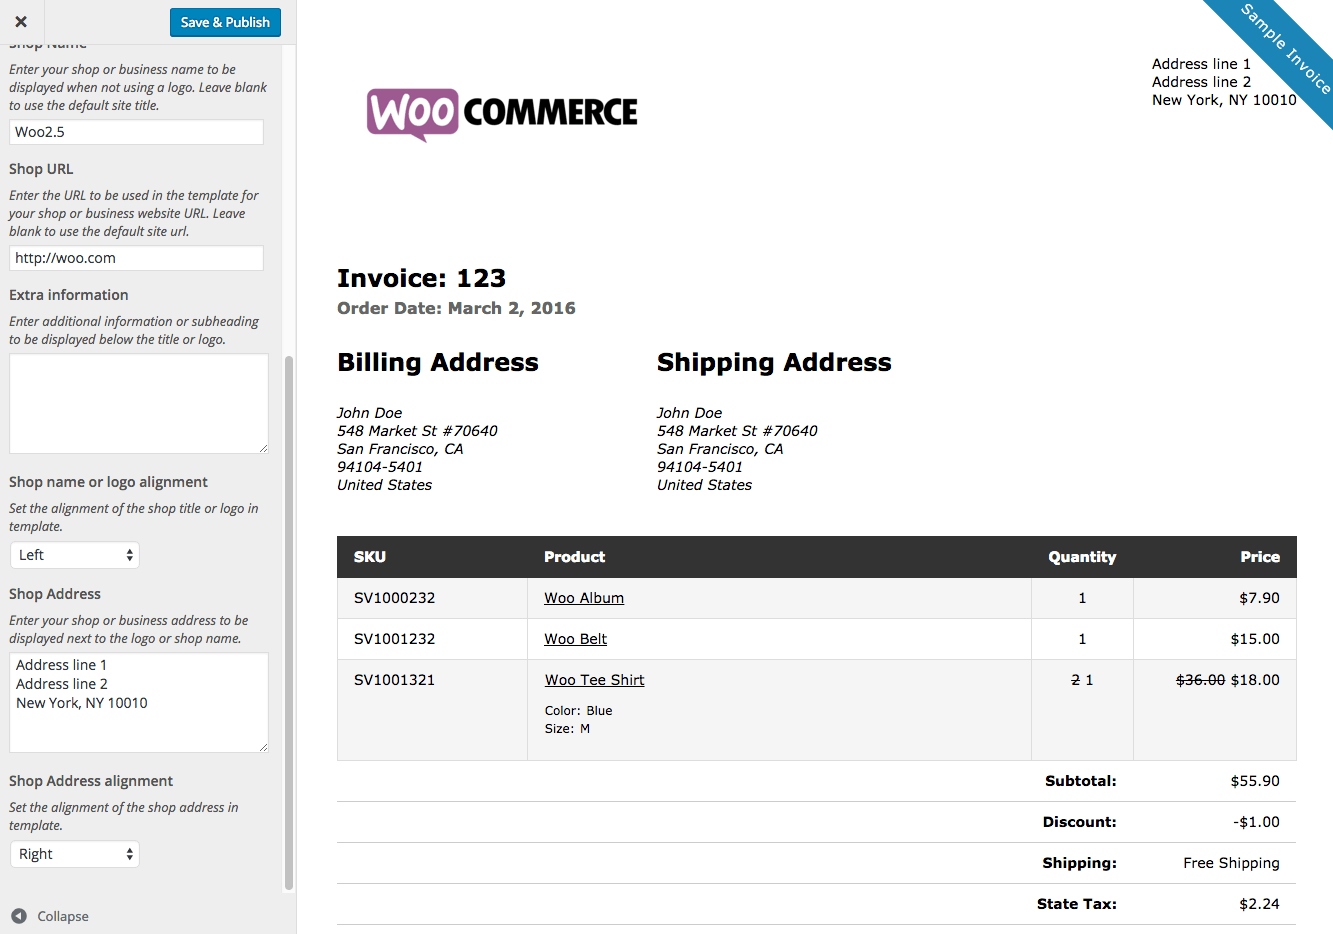 Soulfulpowerus  Inspiring Woocommerce Print Invoices Amp Packing Lists  Woocommerce Docs With Fair Woocommerce Print Invoices  Packing Lists Customizer With Cute Downloadable Invoices Also How Do You Make An Invoice In Addition Labcorp Invoice And How To Find Out Dealer Invoice Price As Well As Cars Invoice Price Additionally Invoice Receipts From Docswoocommercecom With Soulfulpowerus  Fair Woocommerce Print Invoices Amp Packing Lists  Woocommerce Docs With Cute Woocommerce Print Invoices  Packing Lists Customizer And Inspiring Downloadable Invoices Also How Do You Make An Invoice In Addition Labcorp Invoice From Docswoocommercecom